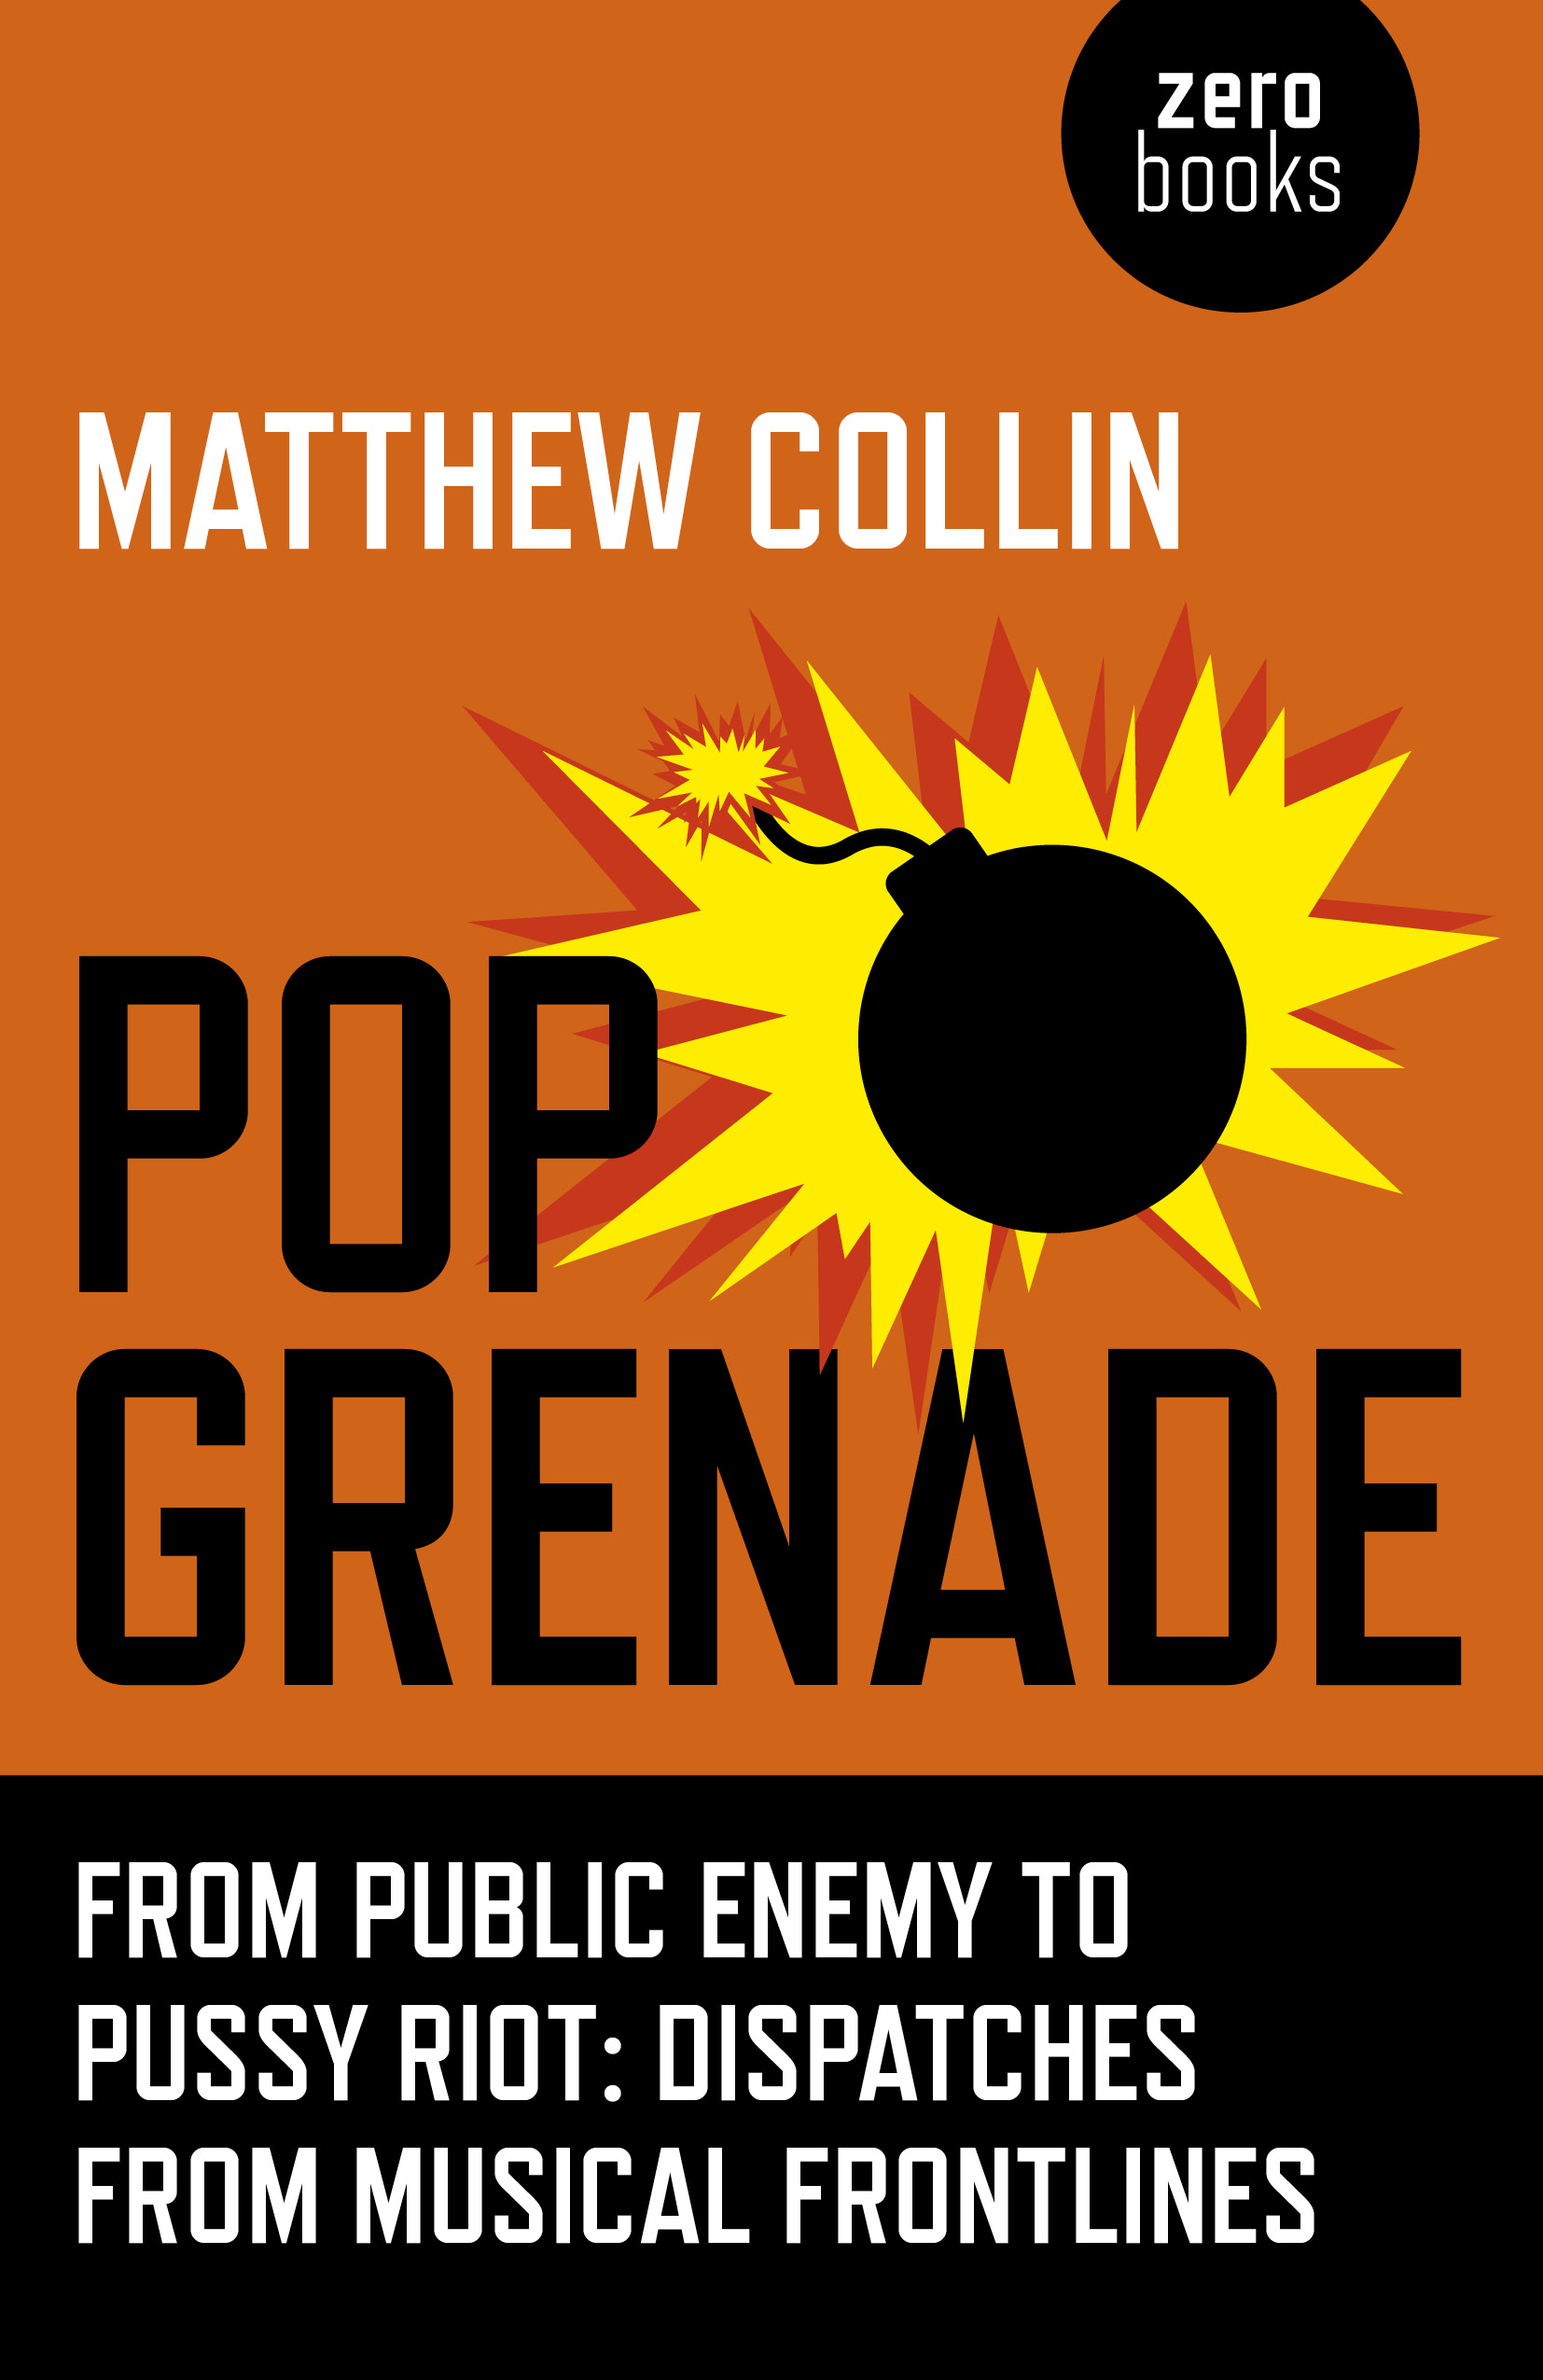 Pop Grenade: From Public Enemy to Pussy Riot, Book, Extract, Public Enemy Logo, Matthew Collin,